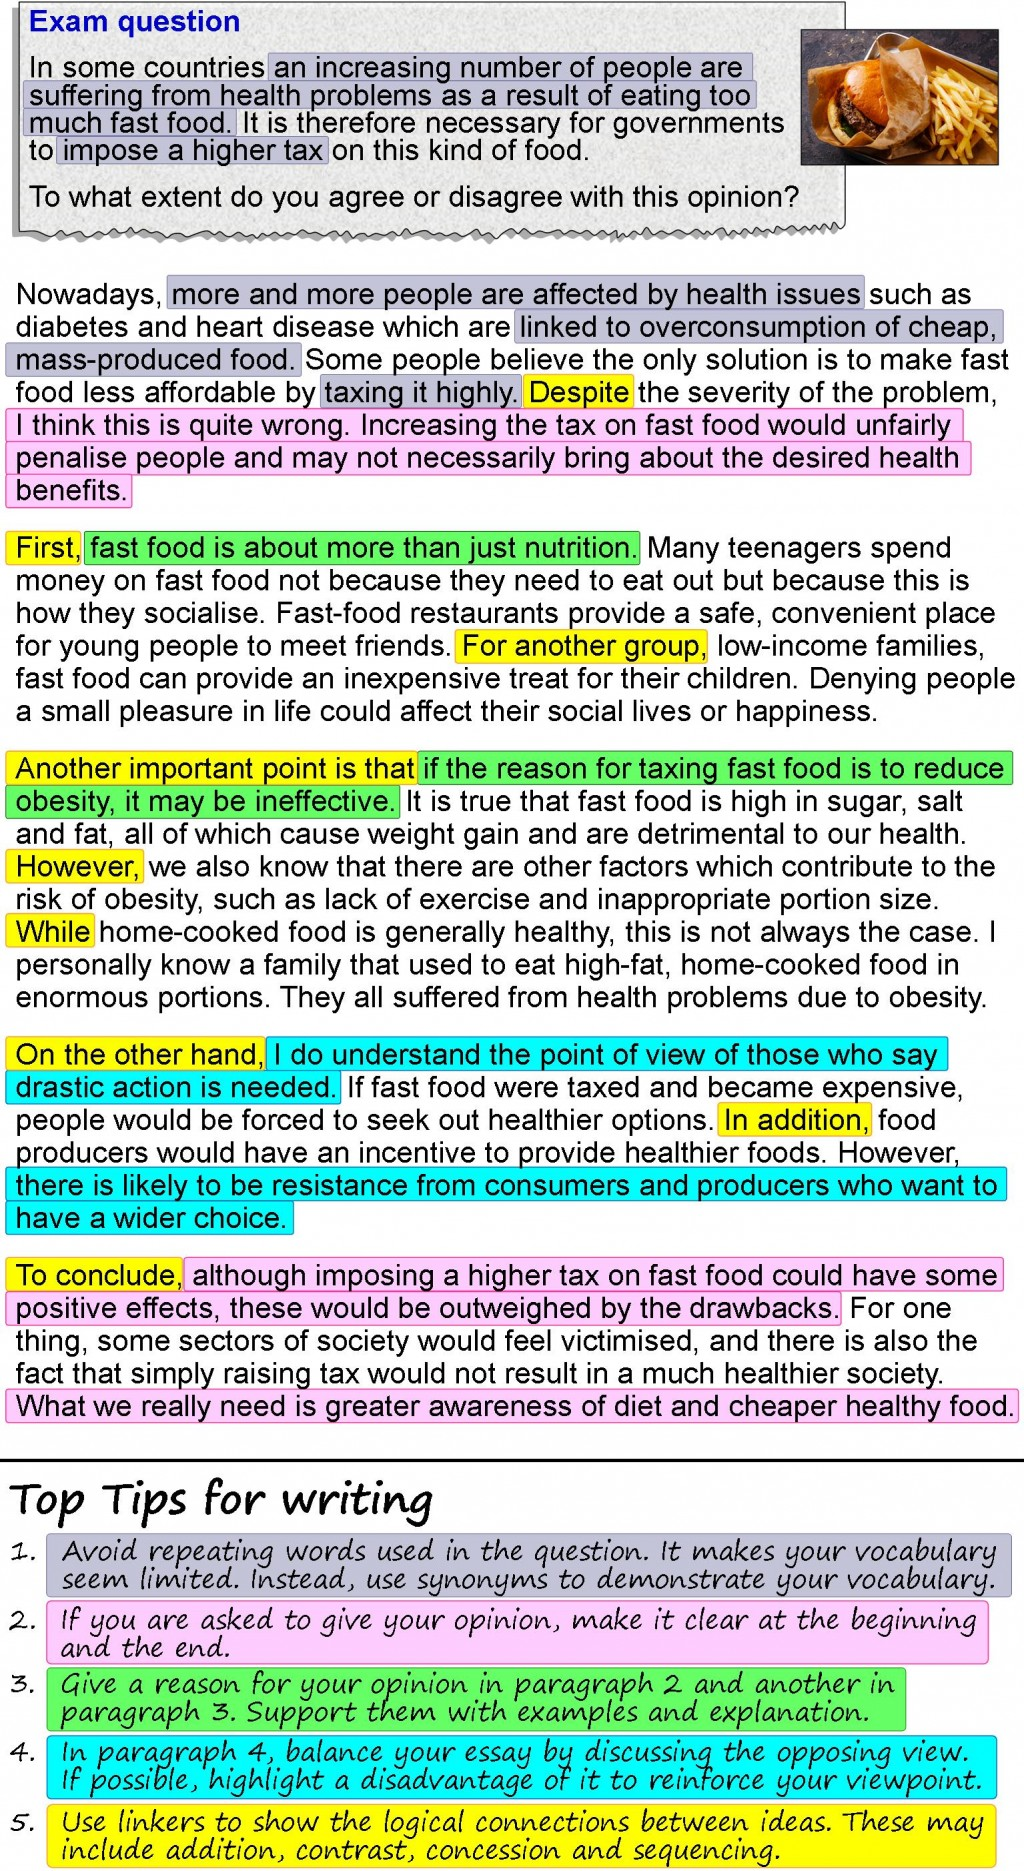 002 Essay Example Healthy Food An Opinion About Fast 4 Best On For Class 10 My Favourite 1 In Tamil Large